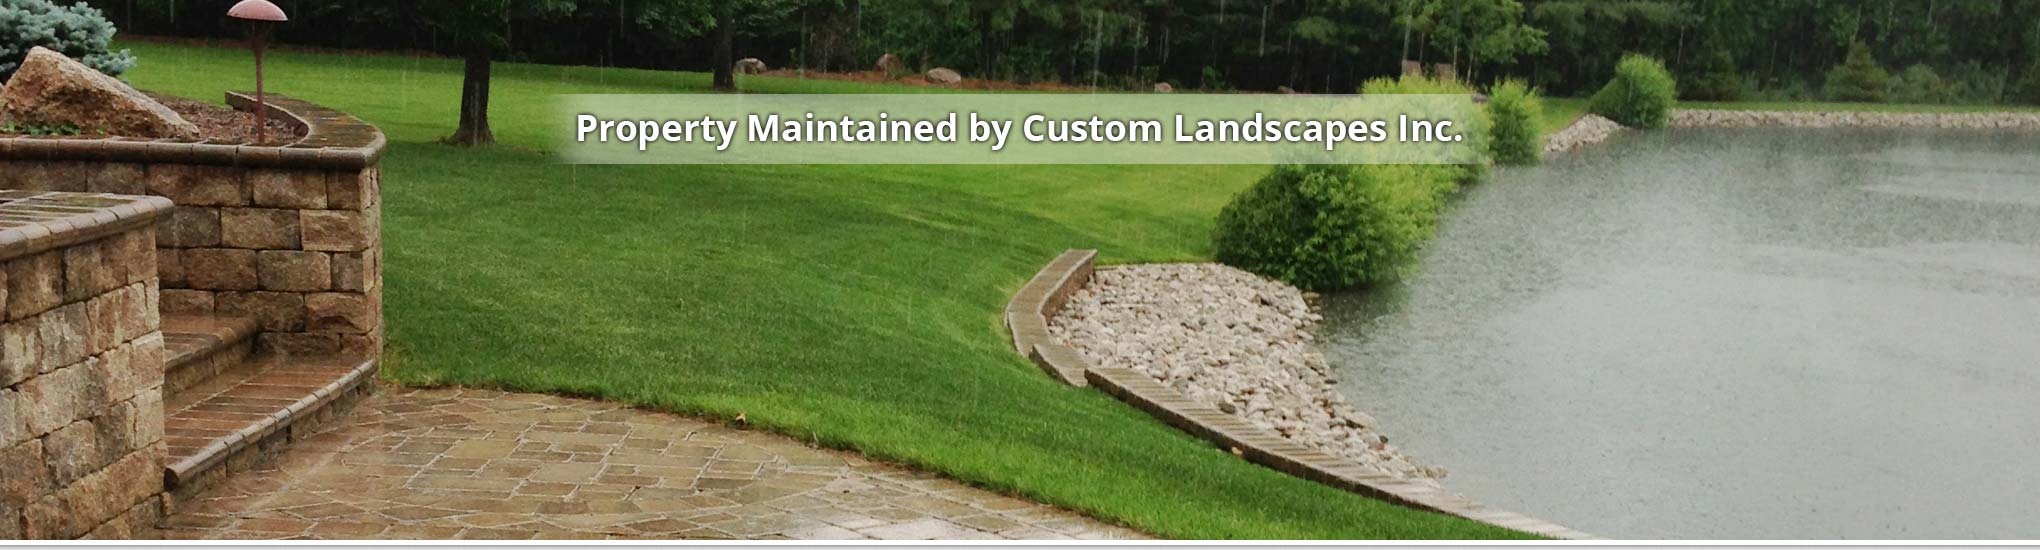 Custom Landscapes Inc. In Decatur, IL Is A Landscaping Company.